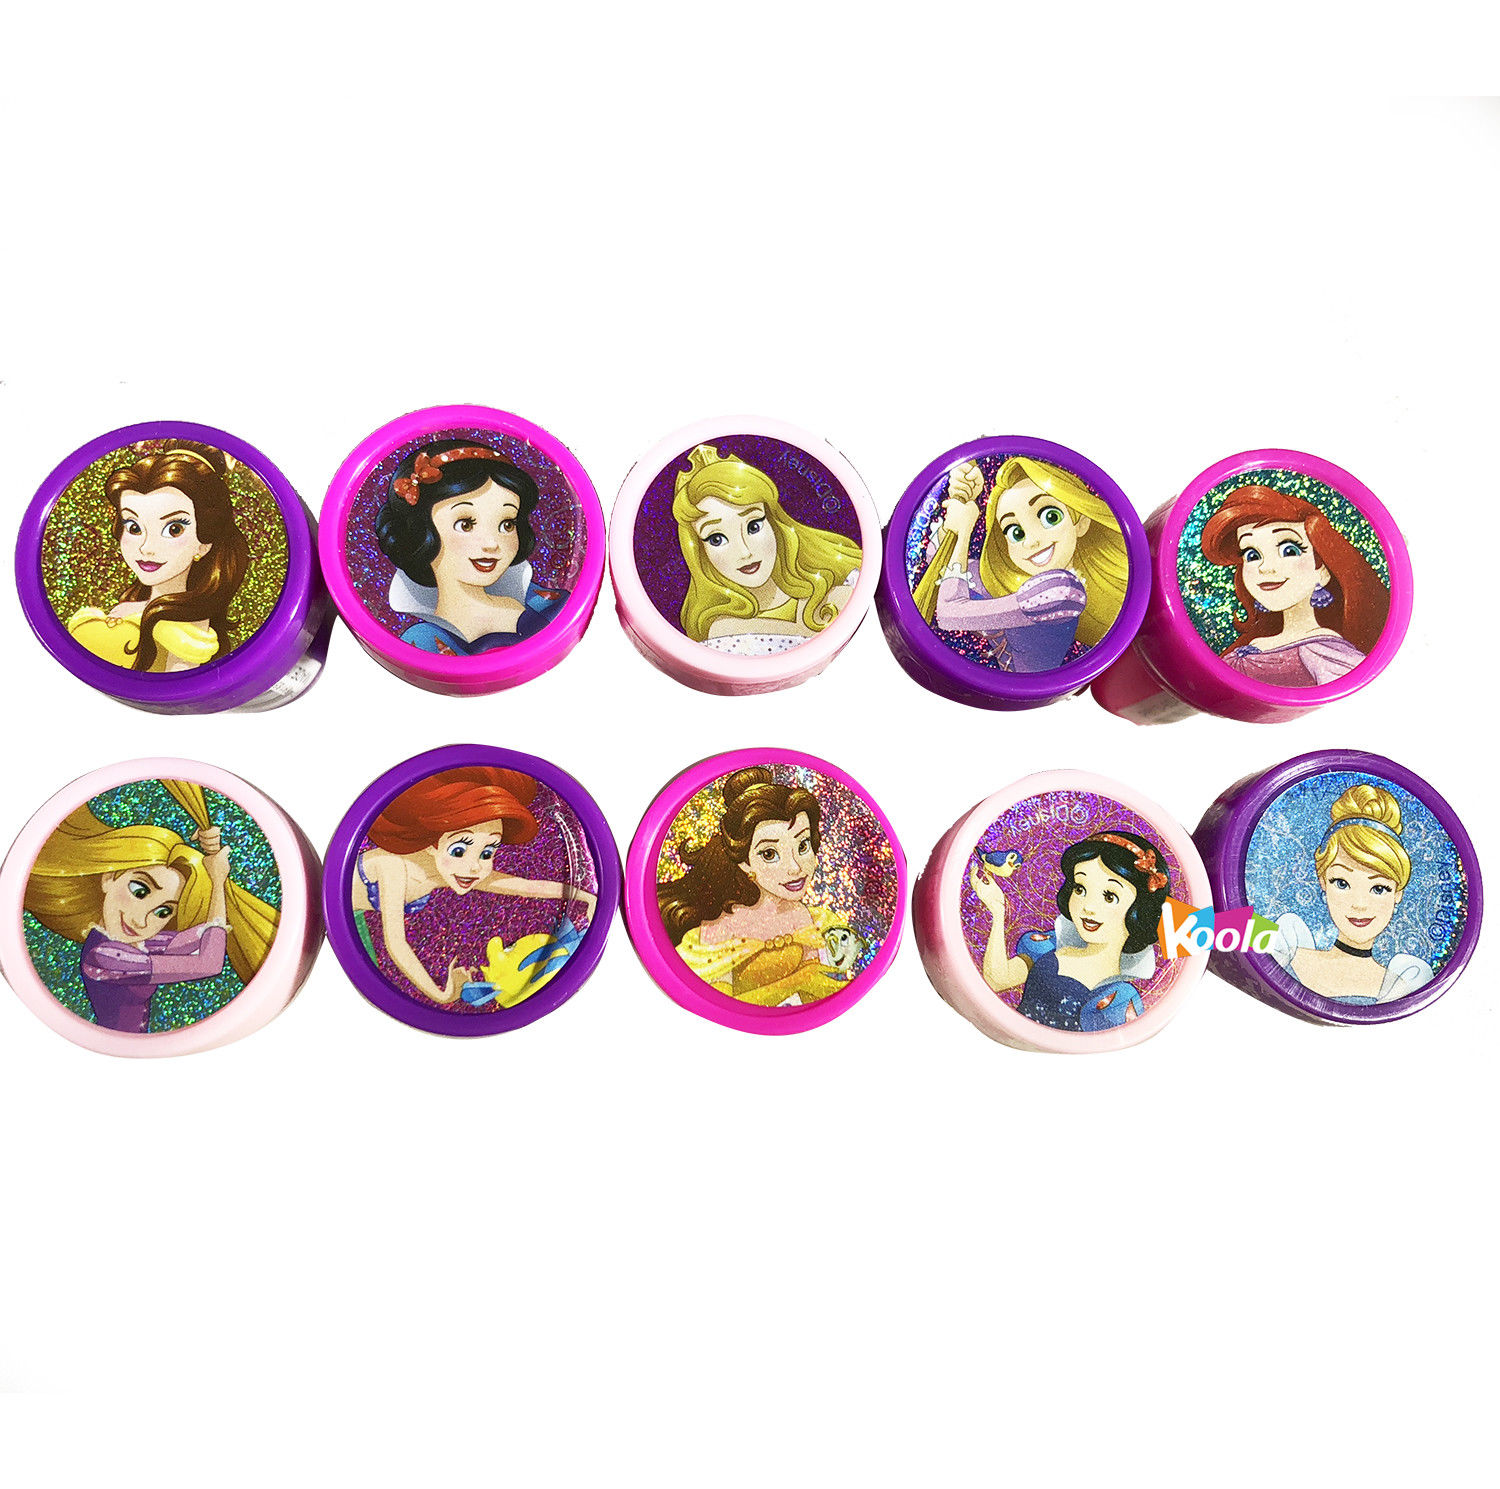 10 pcs Disney Princess Self Inking Stamper Pencil Topper Party Filler Favor